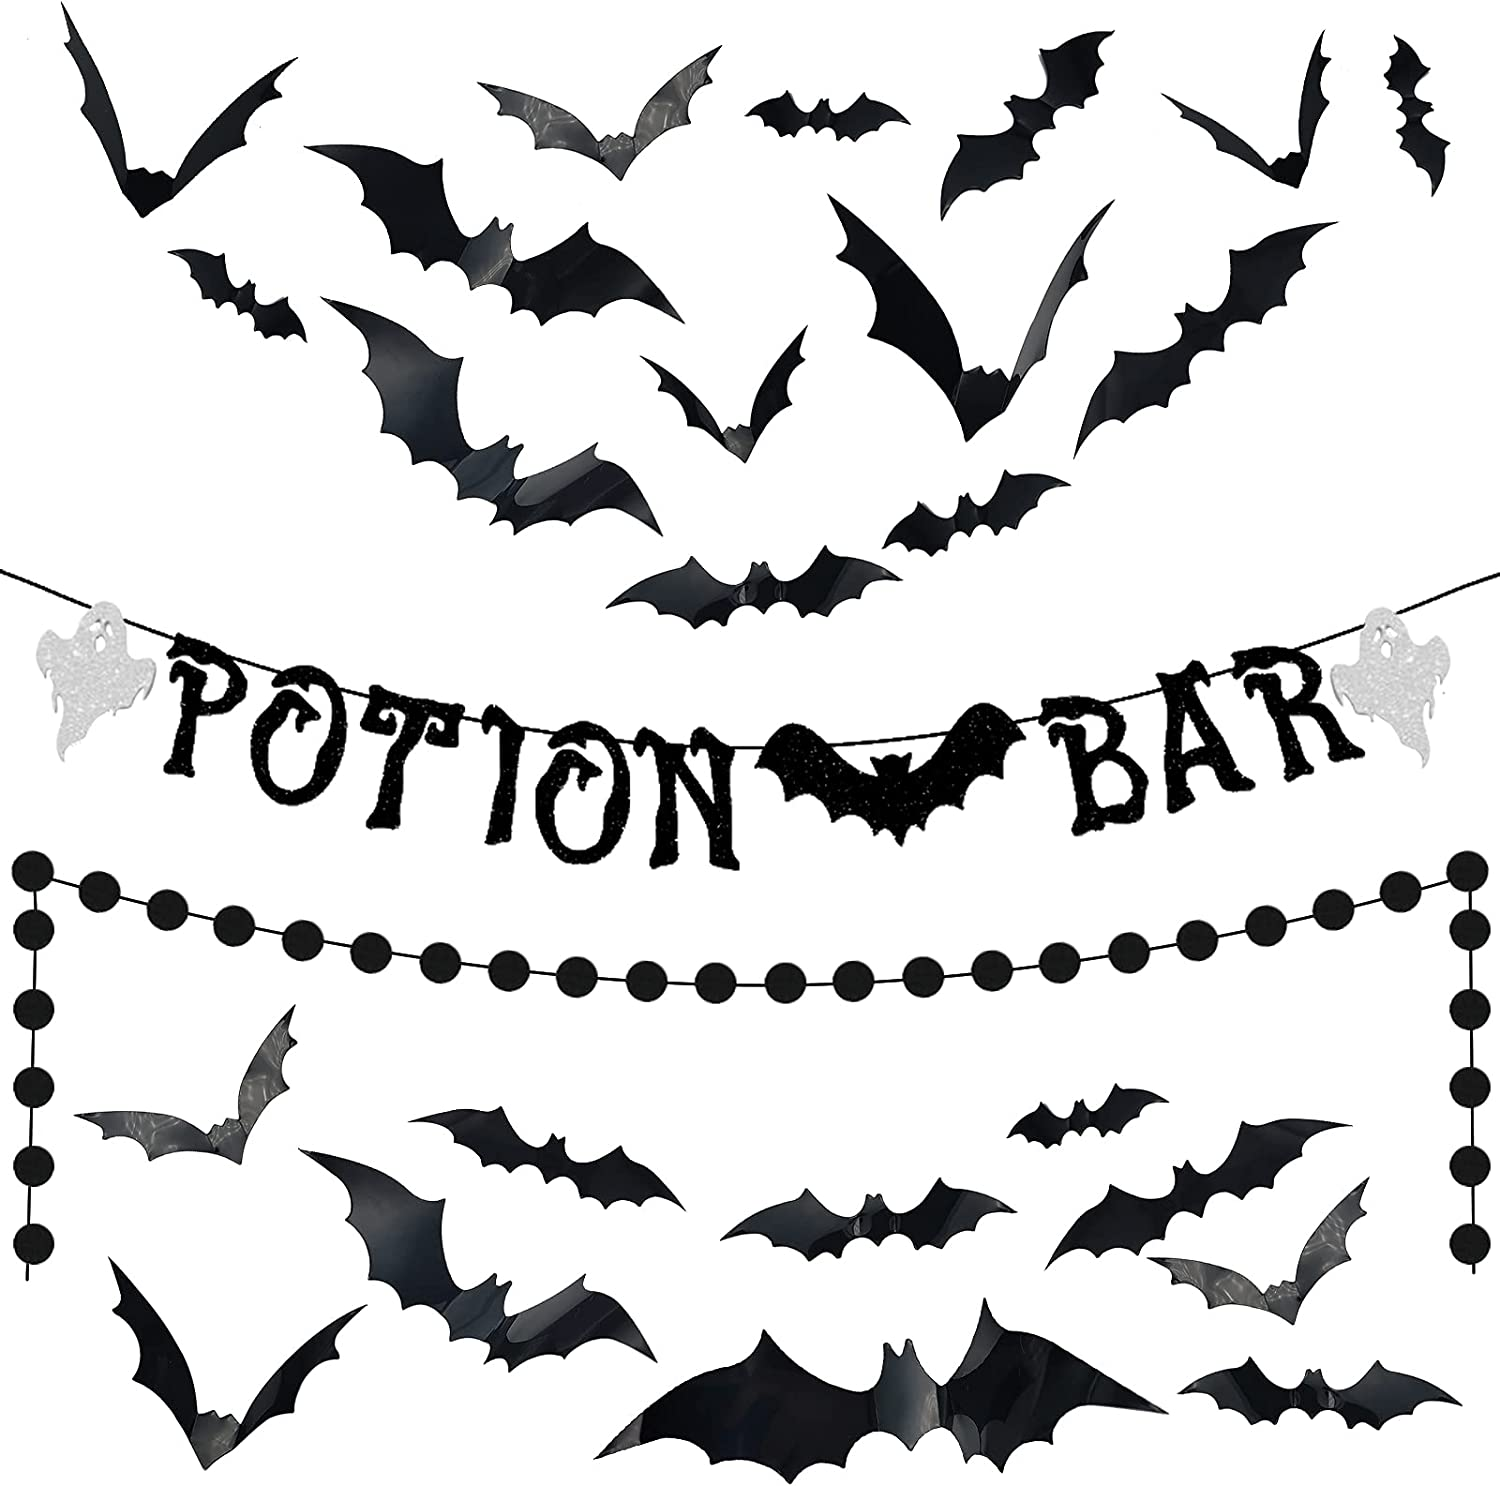 Halloween Potion Bar Ghost Bat Glitter Banner Black Circle Dots Garland and 24 pieces 3D Bat Decor Halloween Witches Party Decorations Hocus Pocus Party Supplies Haunted Houses Home Mantel Decor Photo Booth Decors